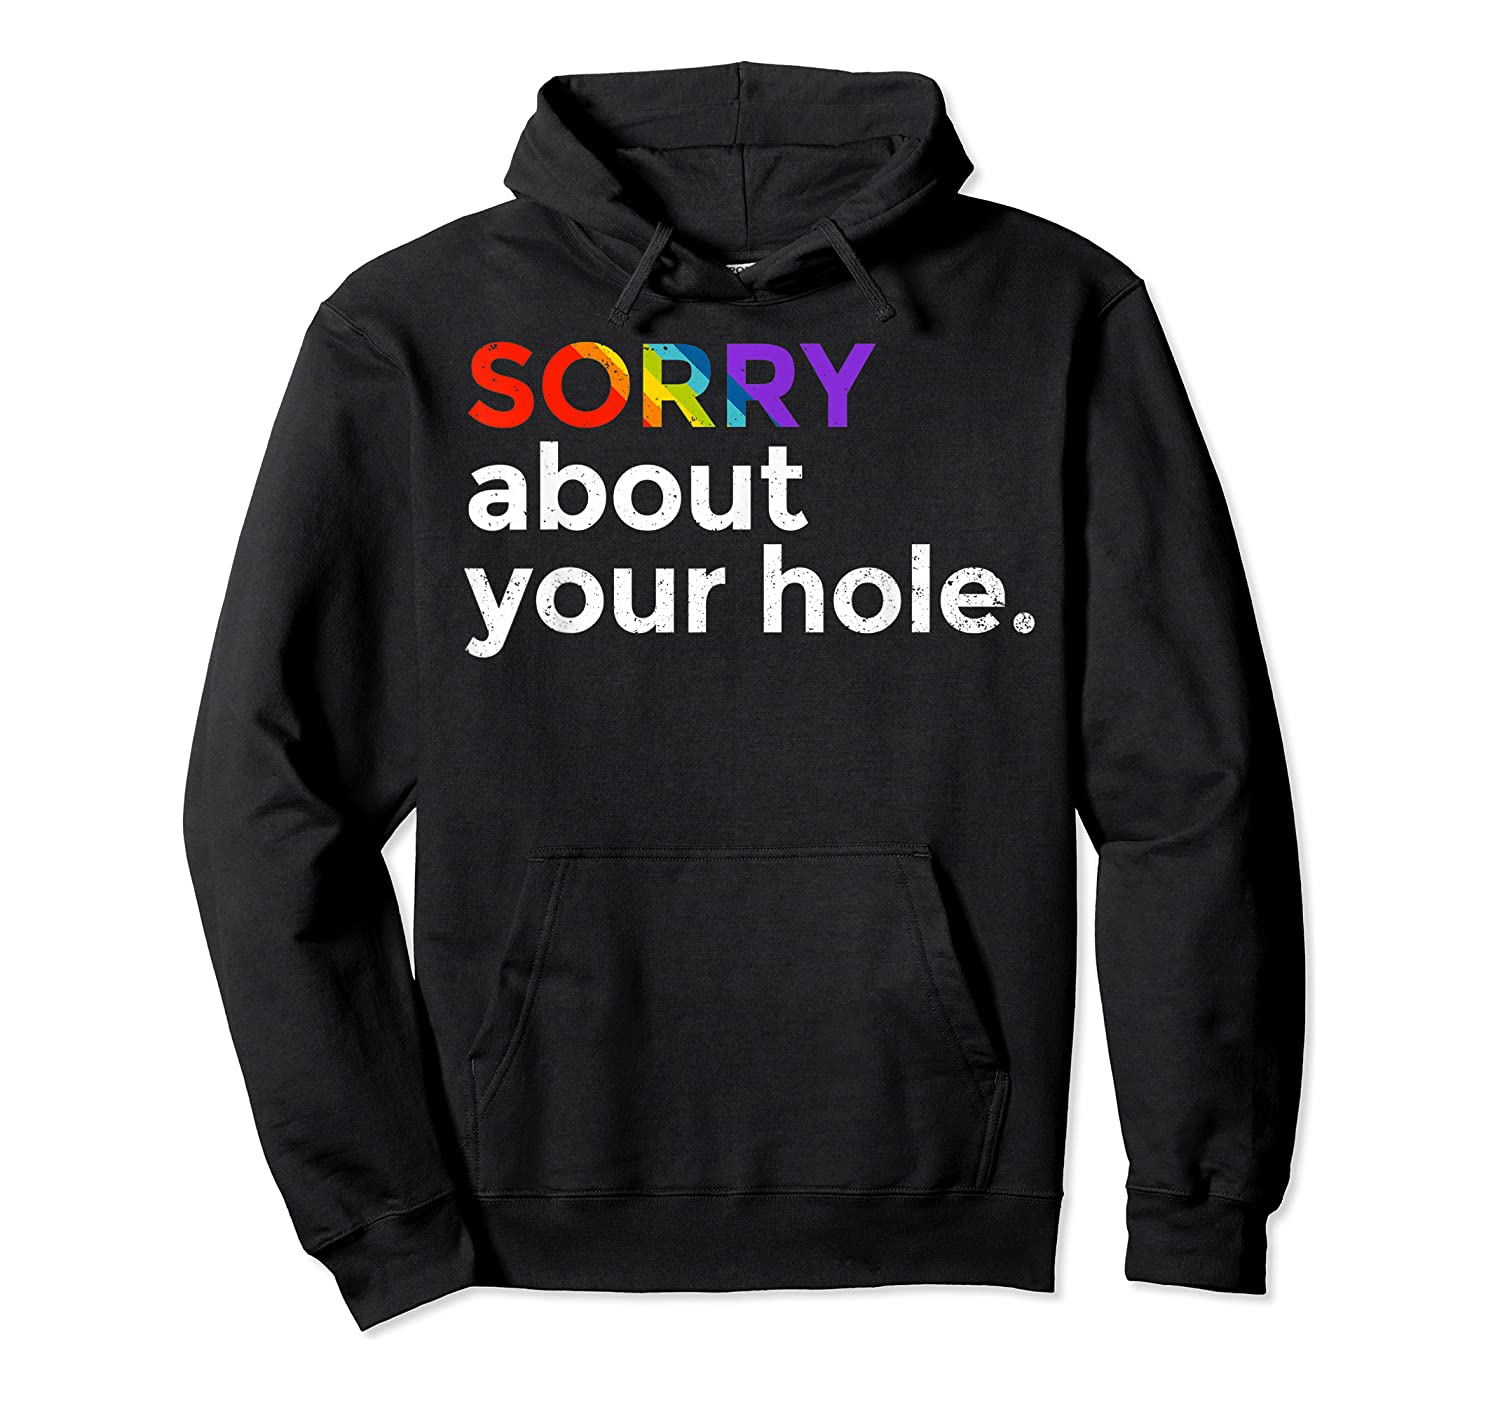 Sorry About Your Hole Funny Lgbt Gay Pride Humor Shirts Unisex Pullover Hoodie